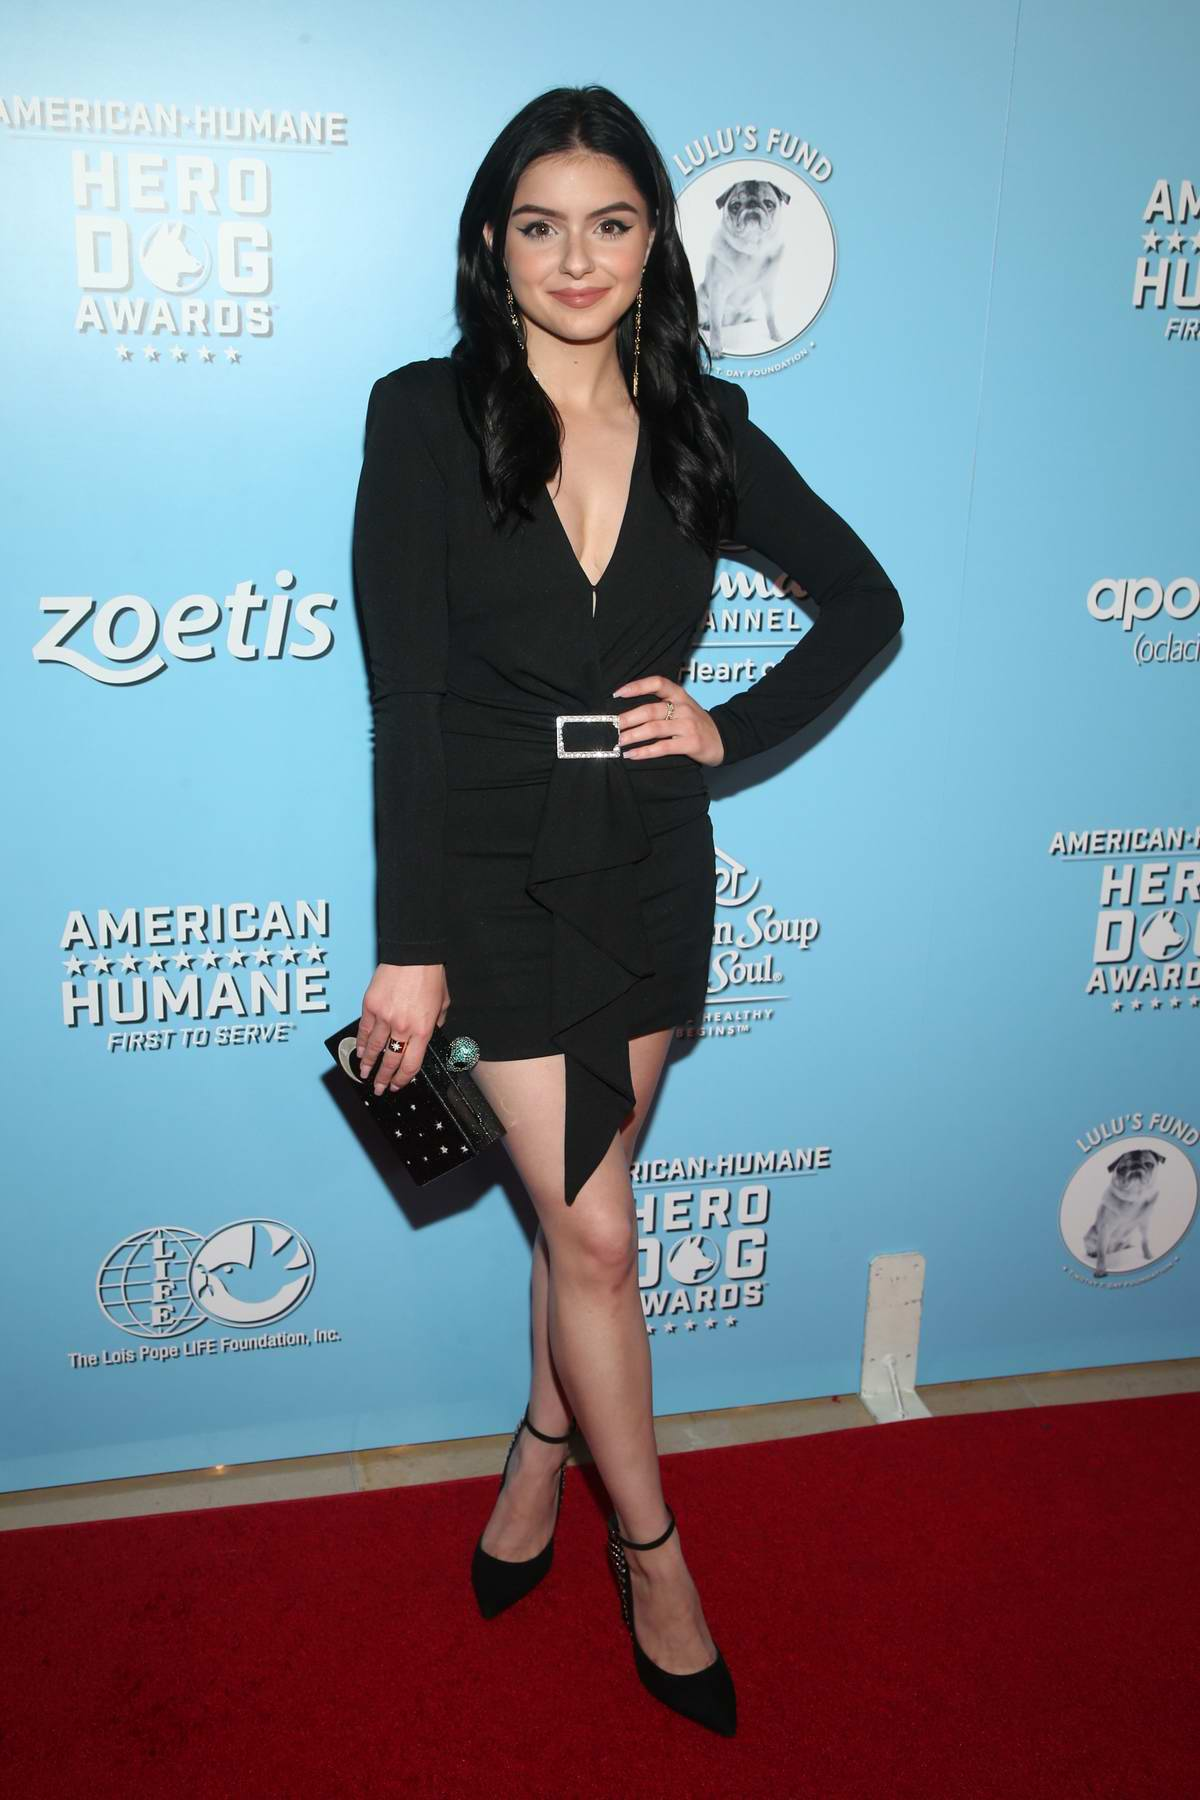 Ariel Winter attends the 2019 American Humane Hero Dog Awards in Los Angeles